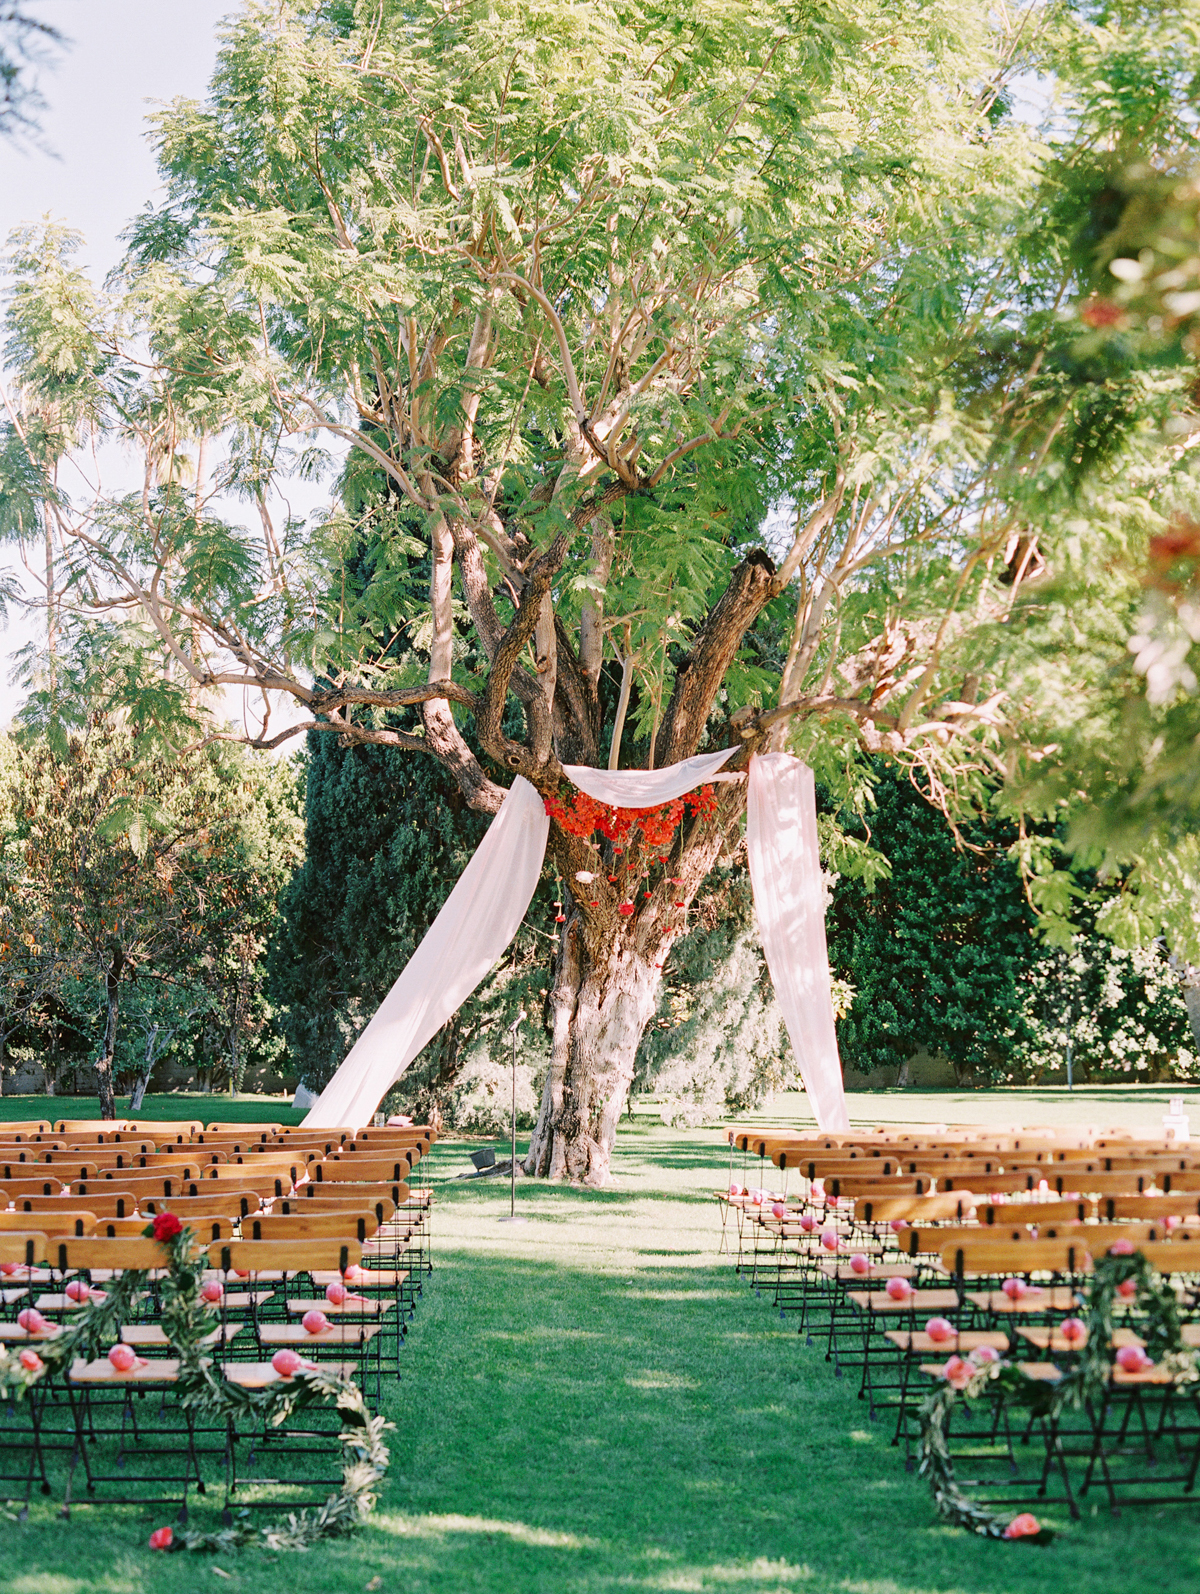 la chureya wedding ceremony palm springs california destination wedding venue